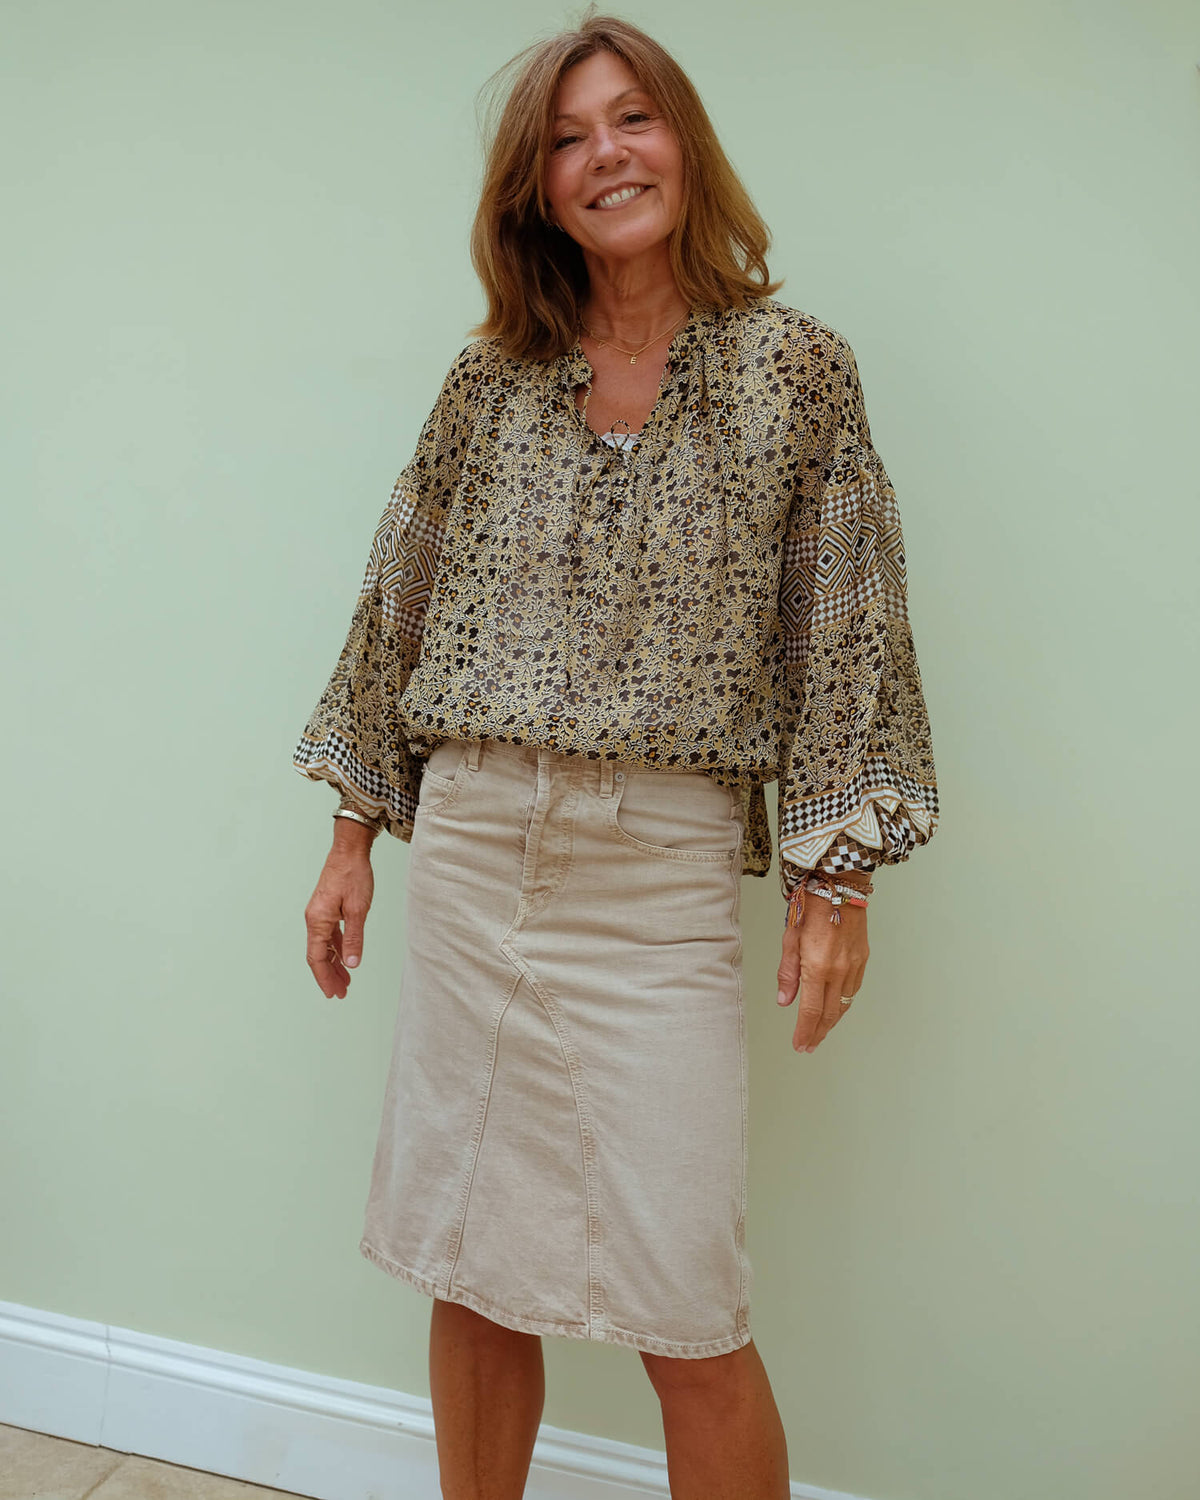 M Mission blouse in sienna